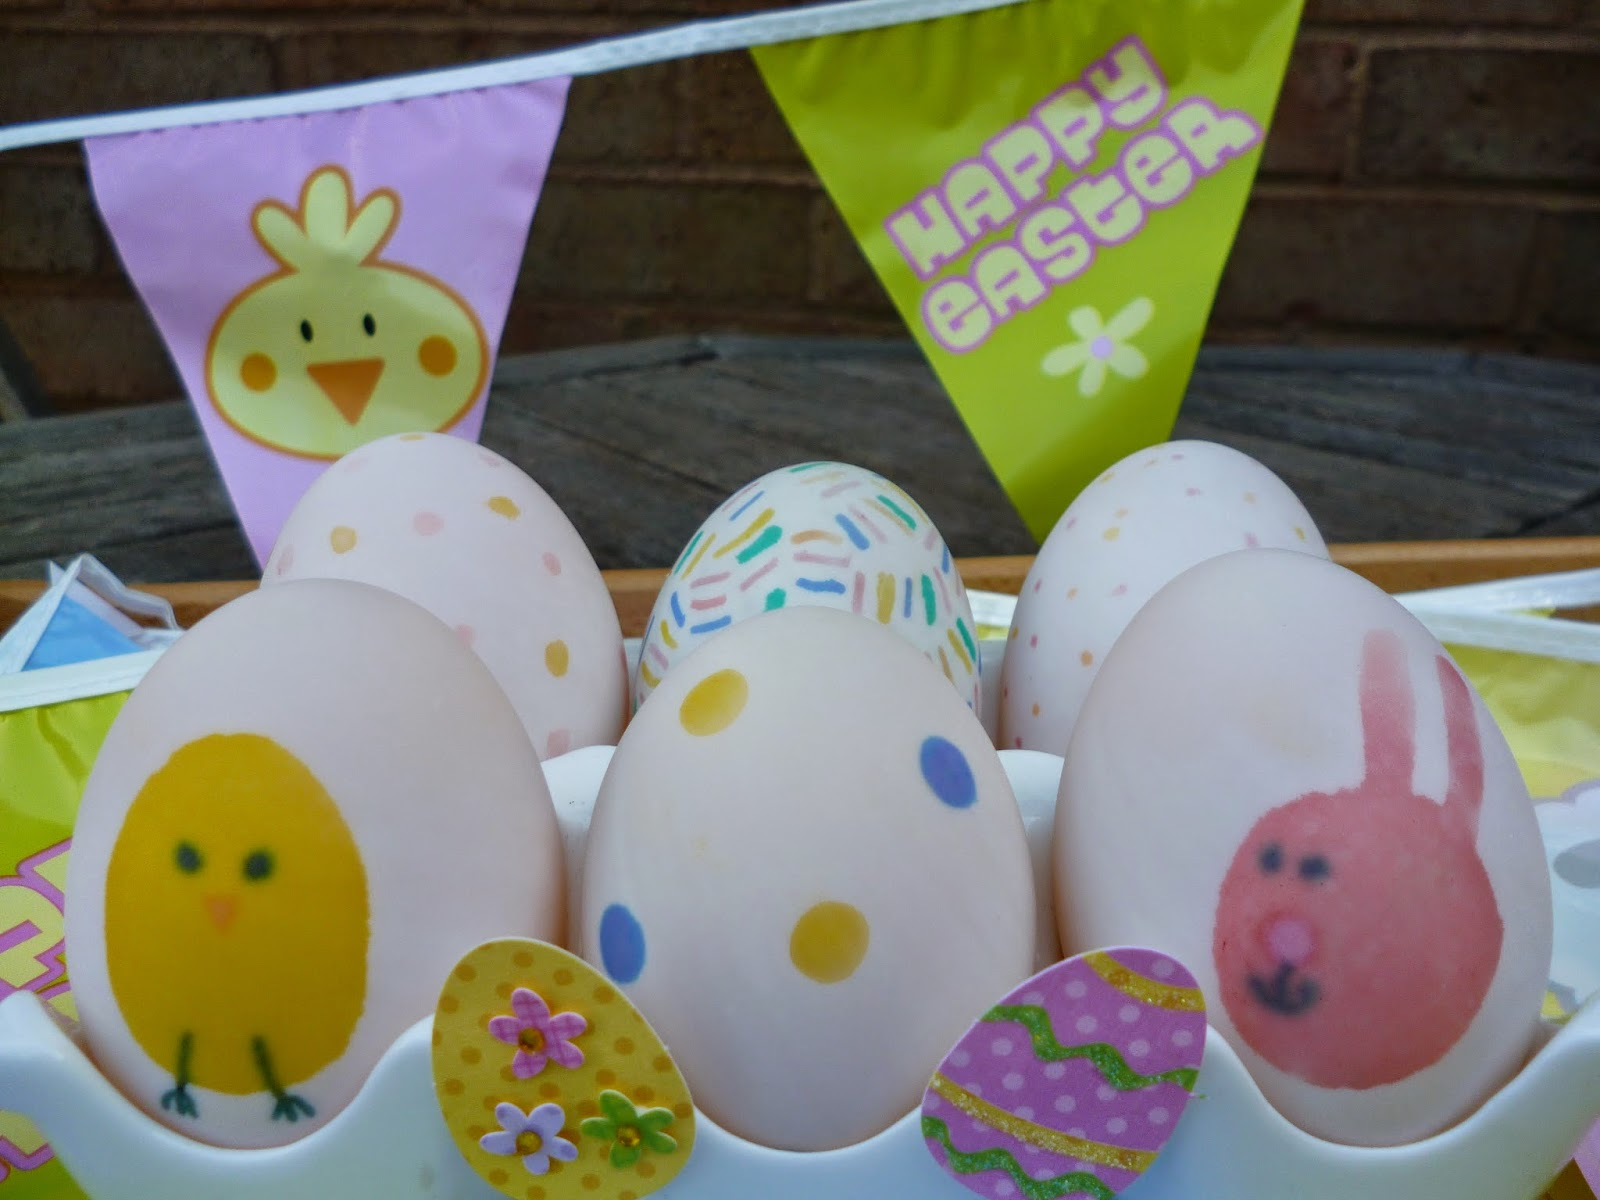 Fun craft idea decorating Easter Eggs with pen